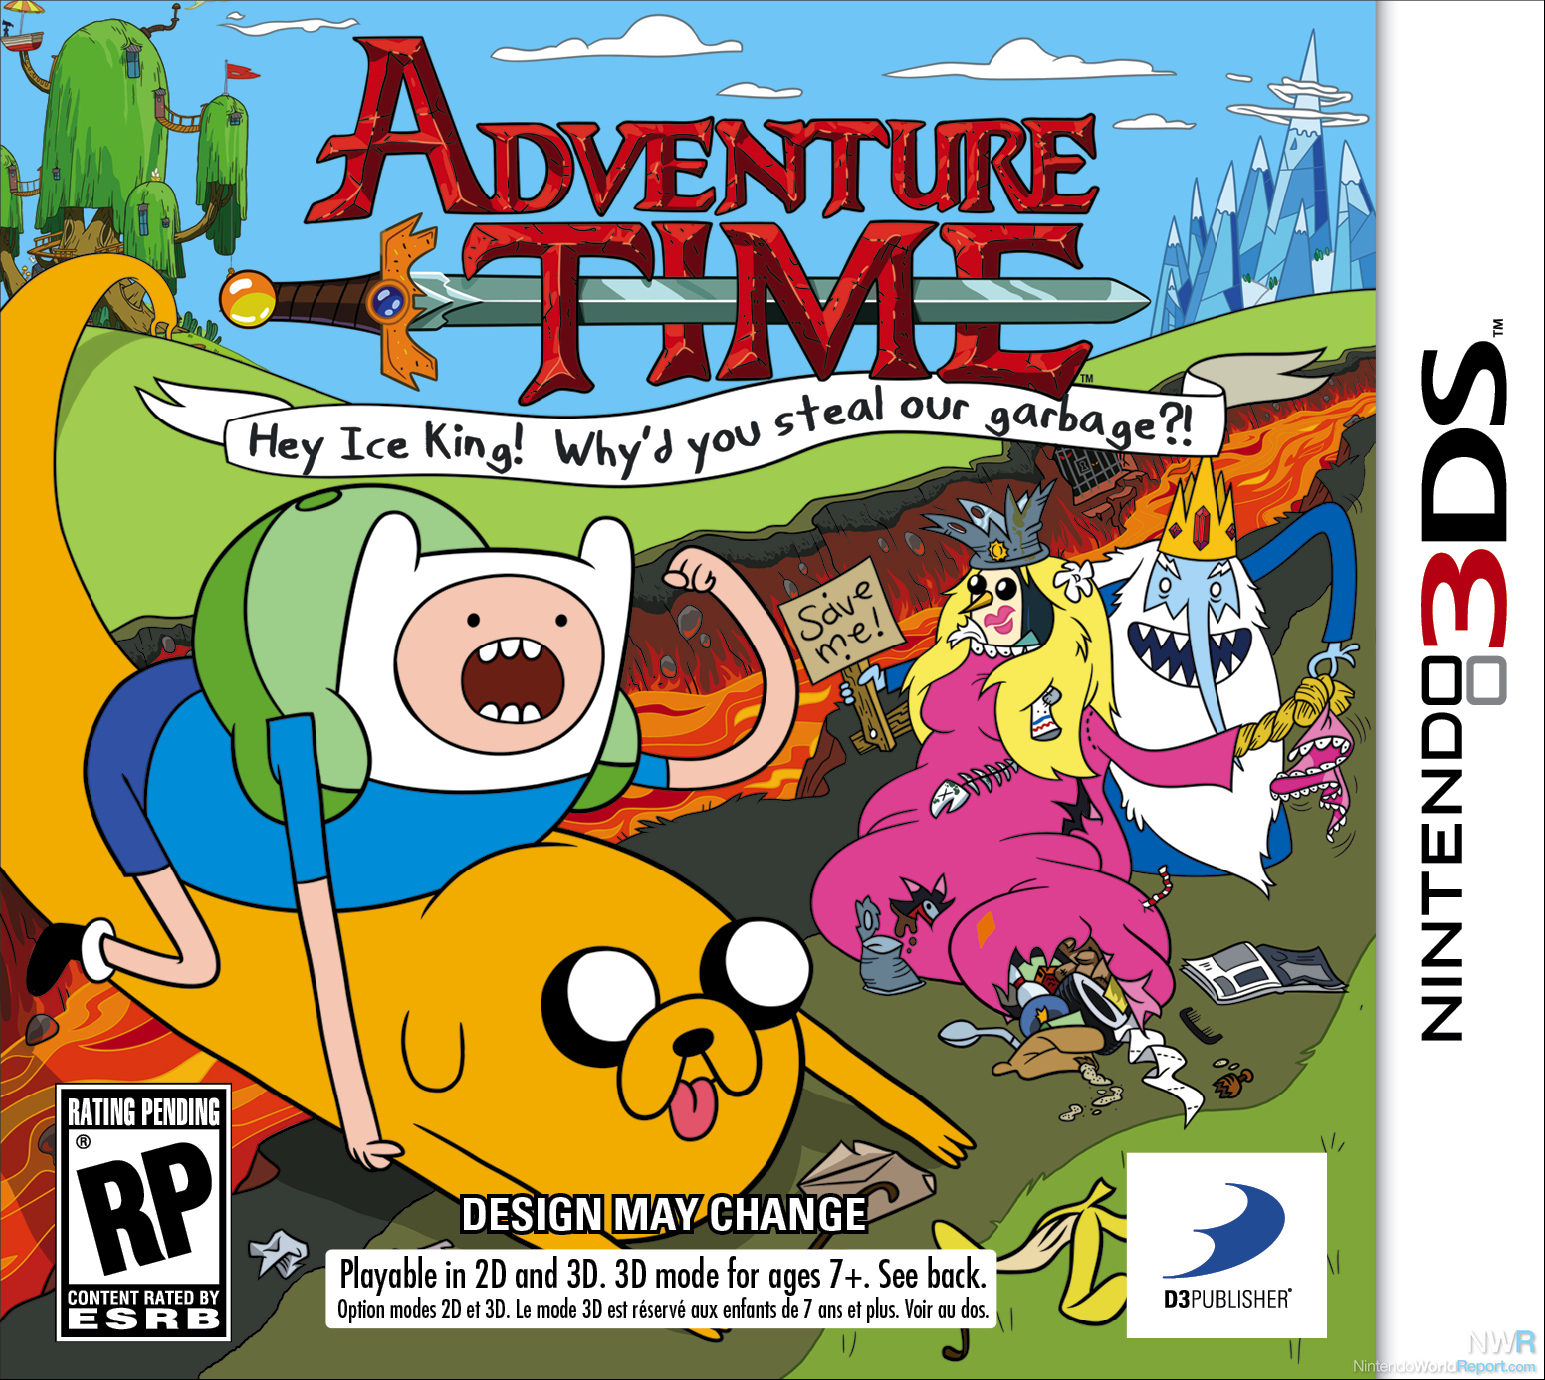 Adventure time: pirates of the enchiridion full version – ripgem. Com.